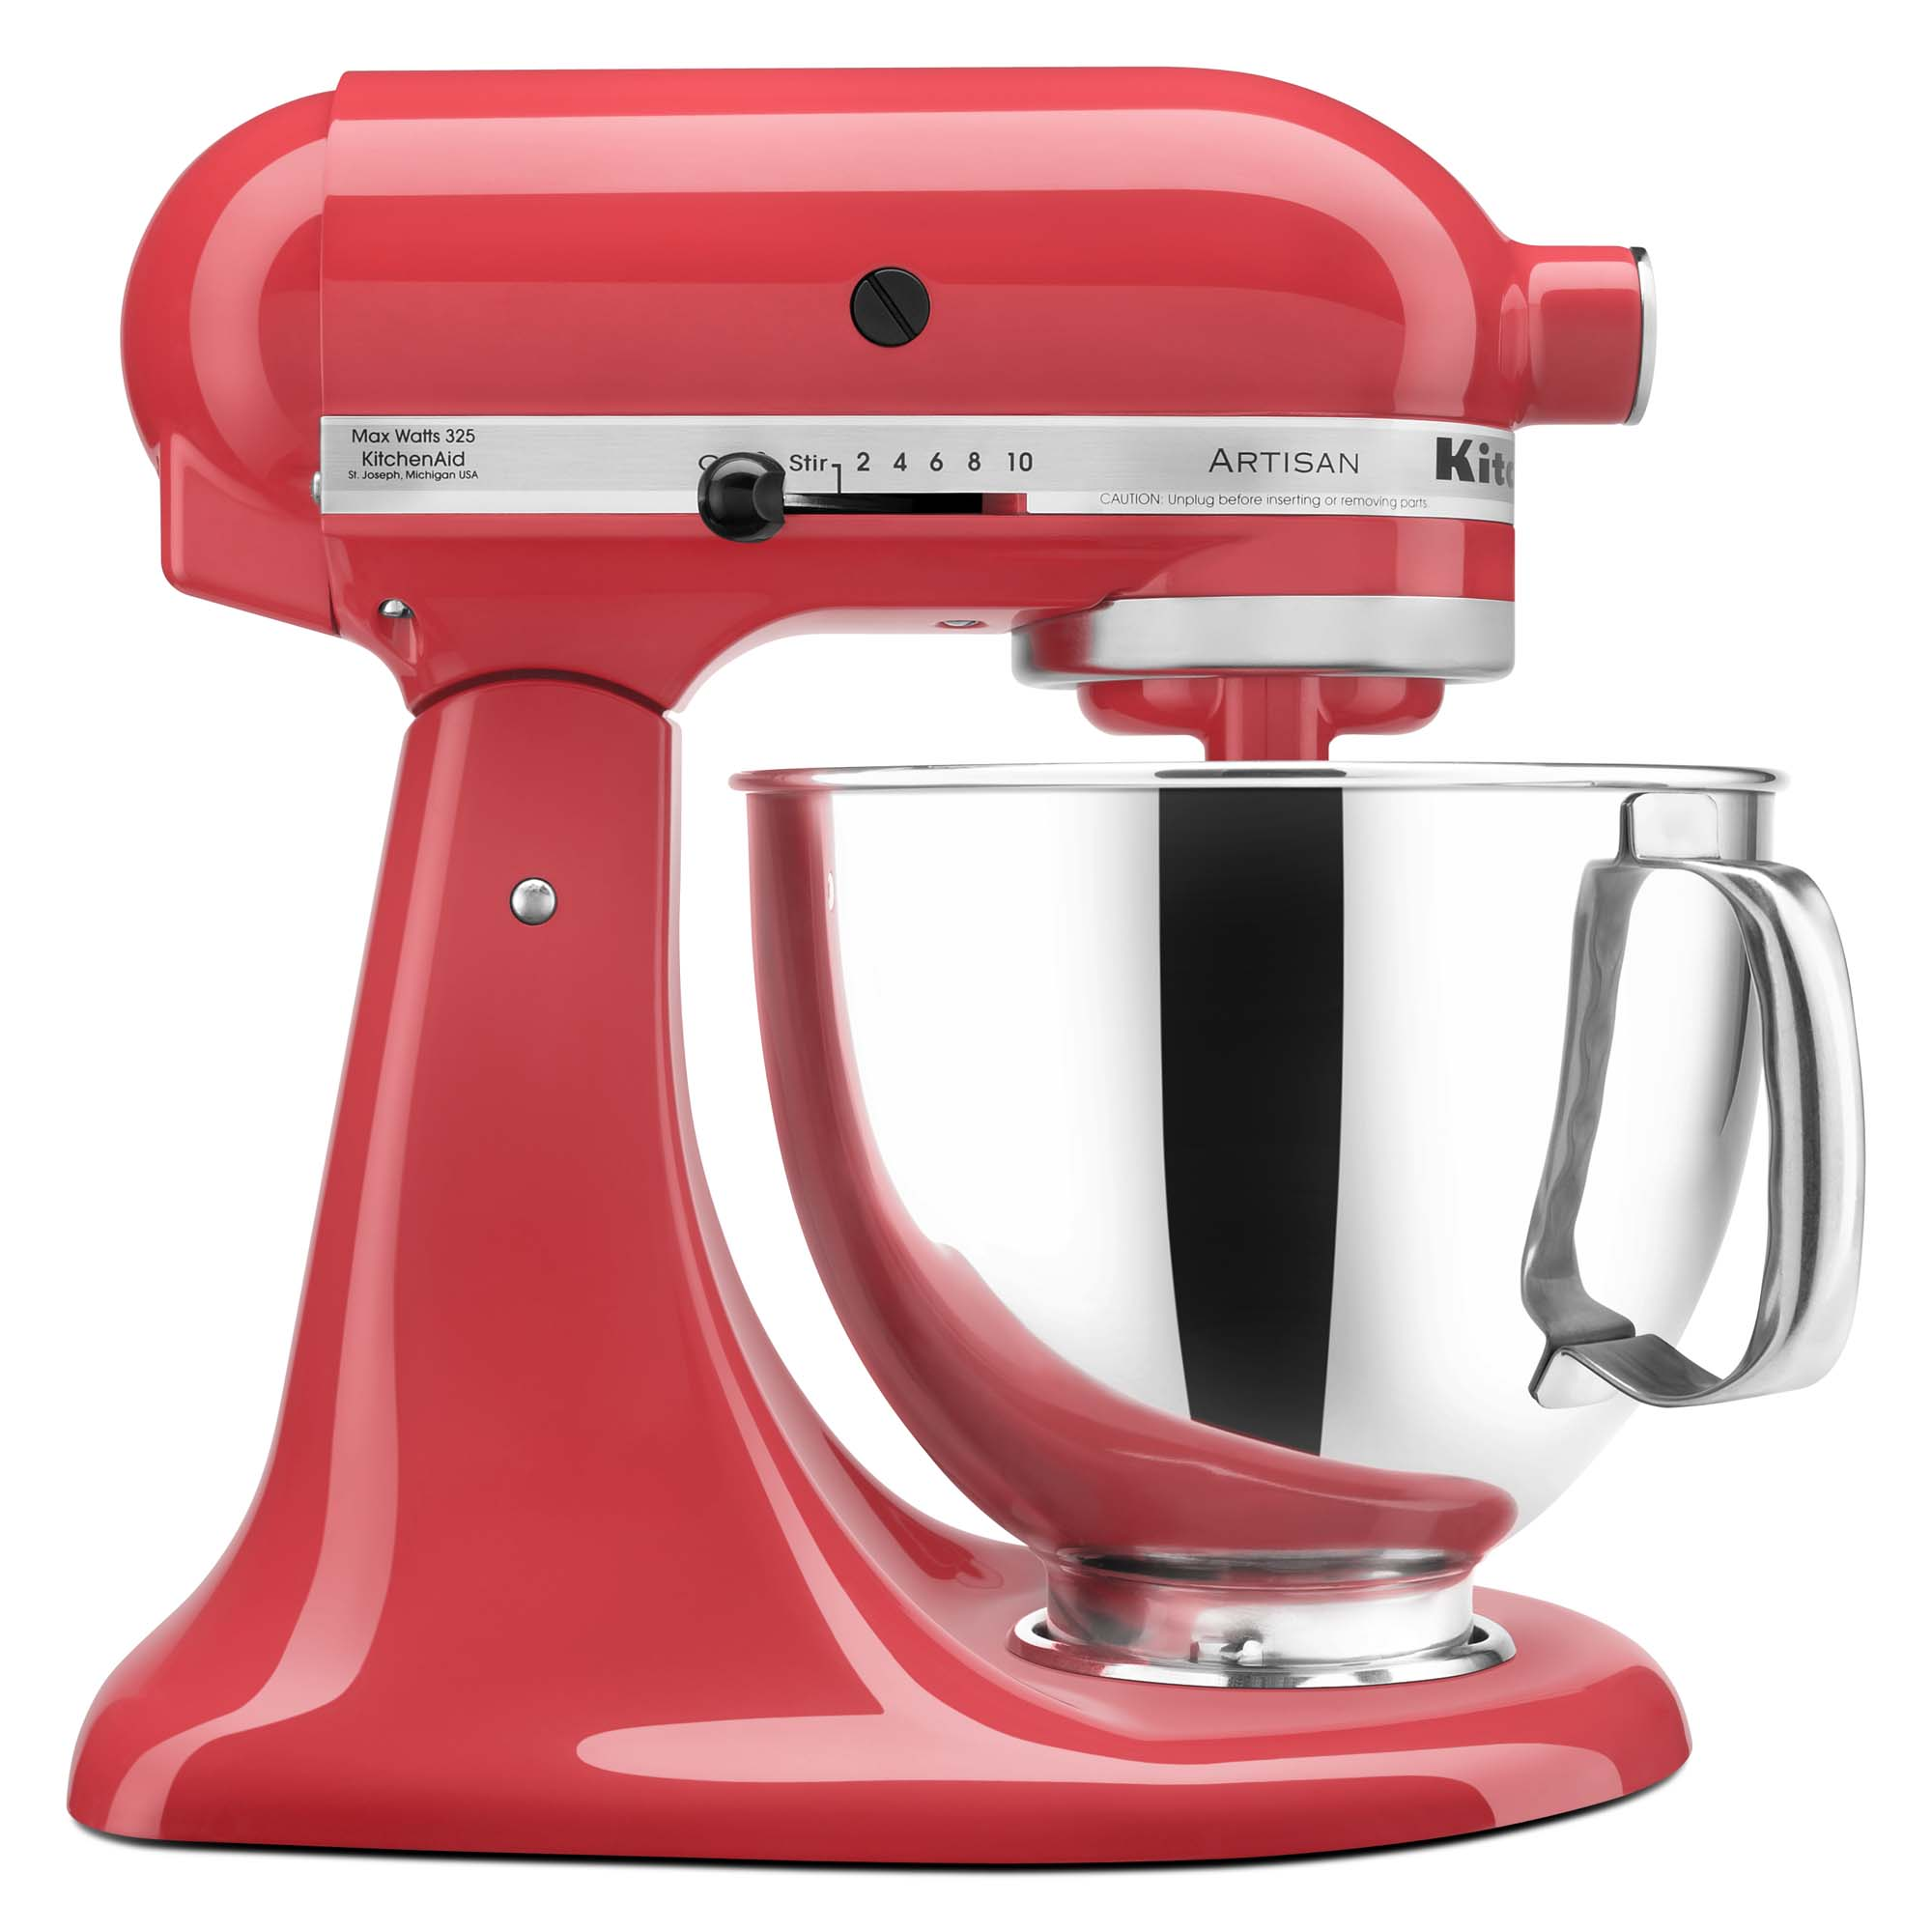 KitchenAid® Refurbished Artisan® Series 5 Quart Tilt-Head Stand Mixer, RRK150 Watermelon